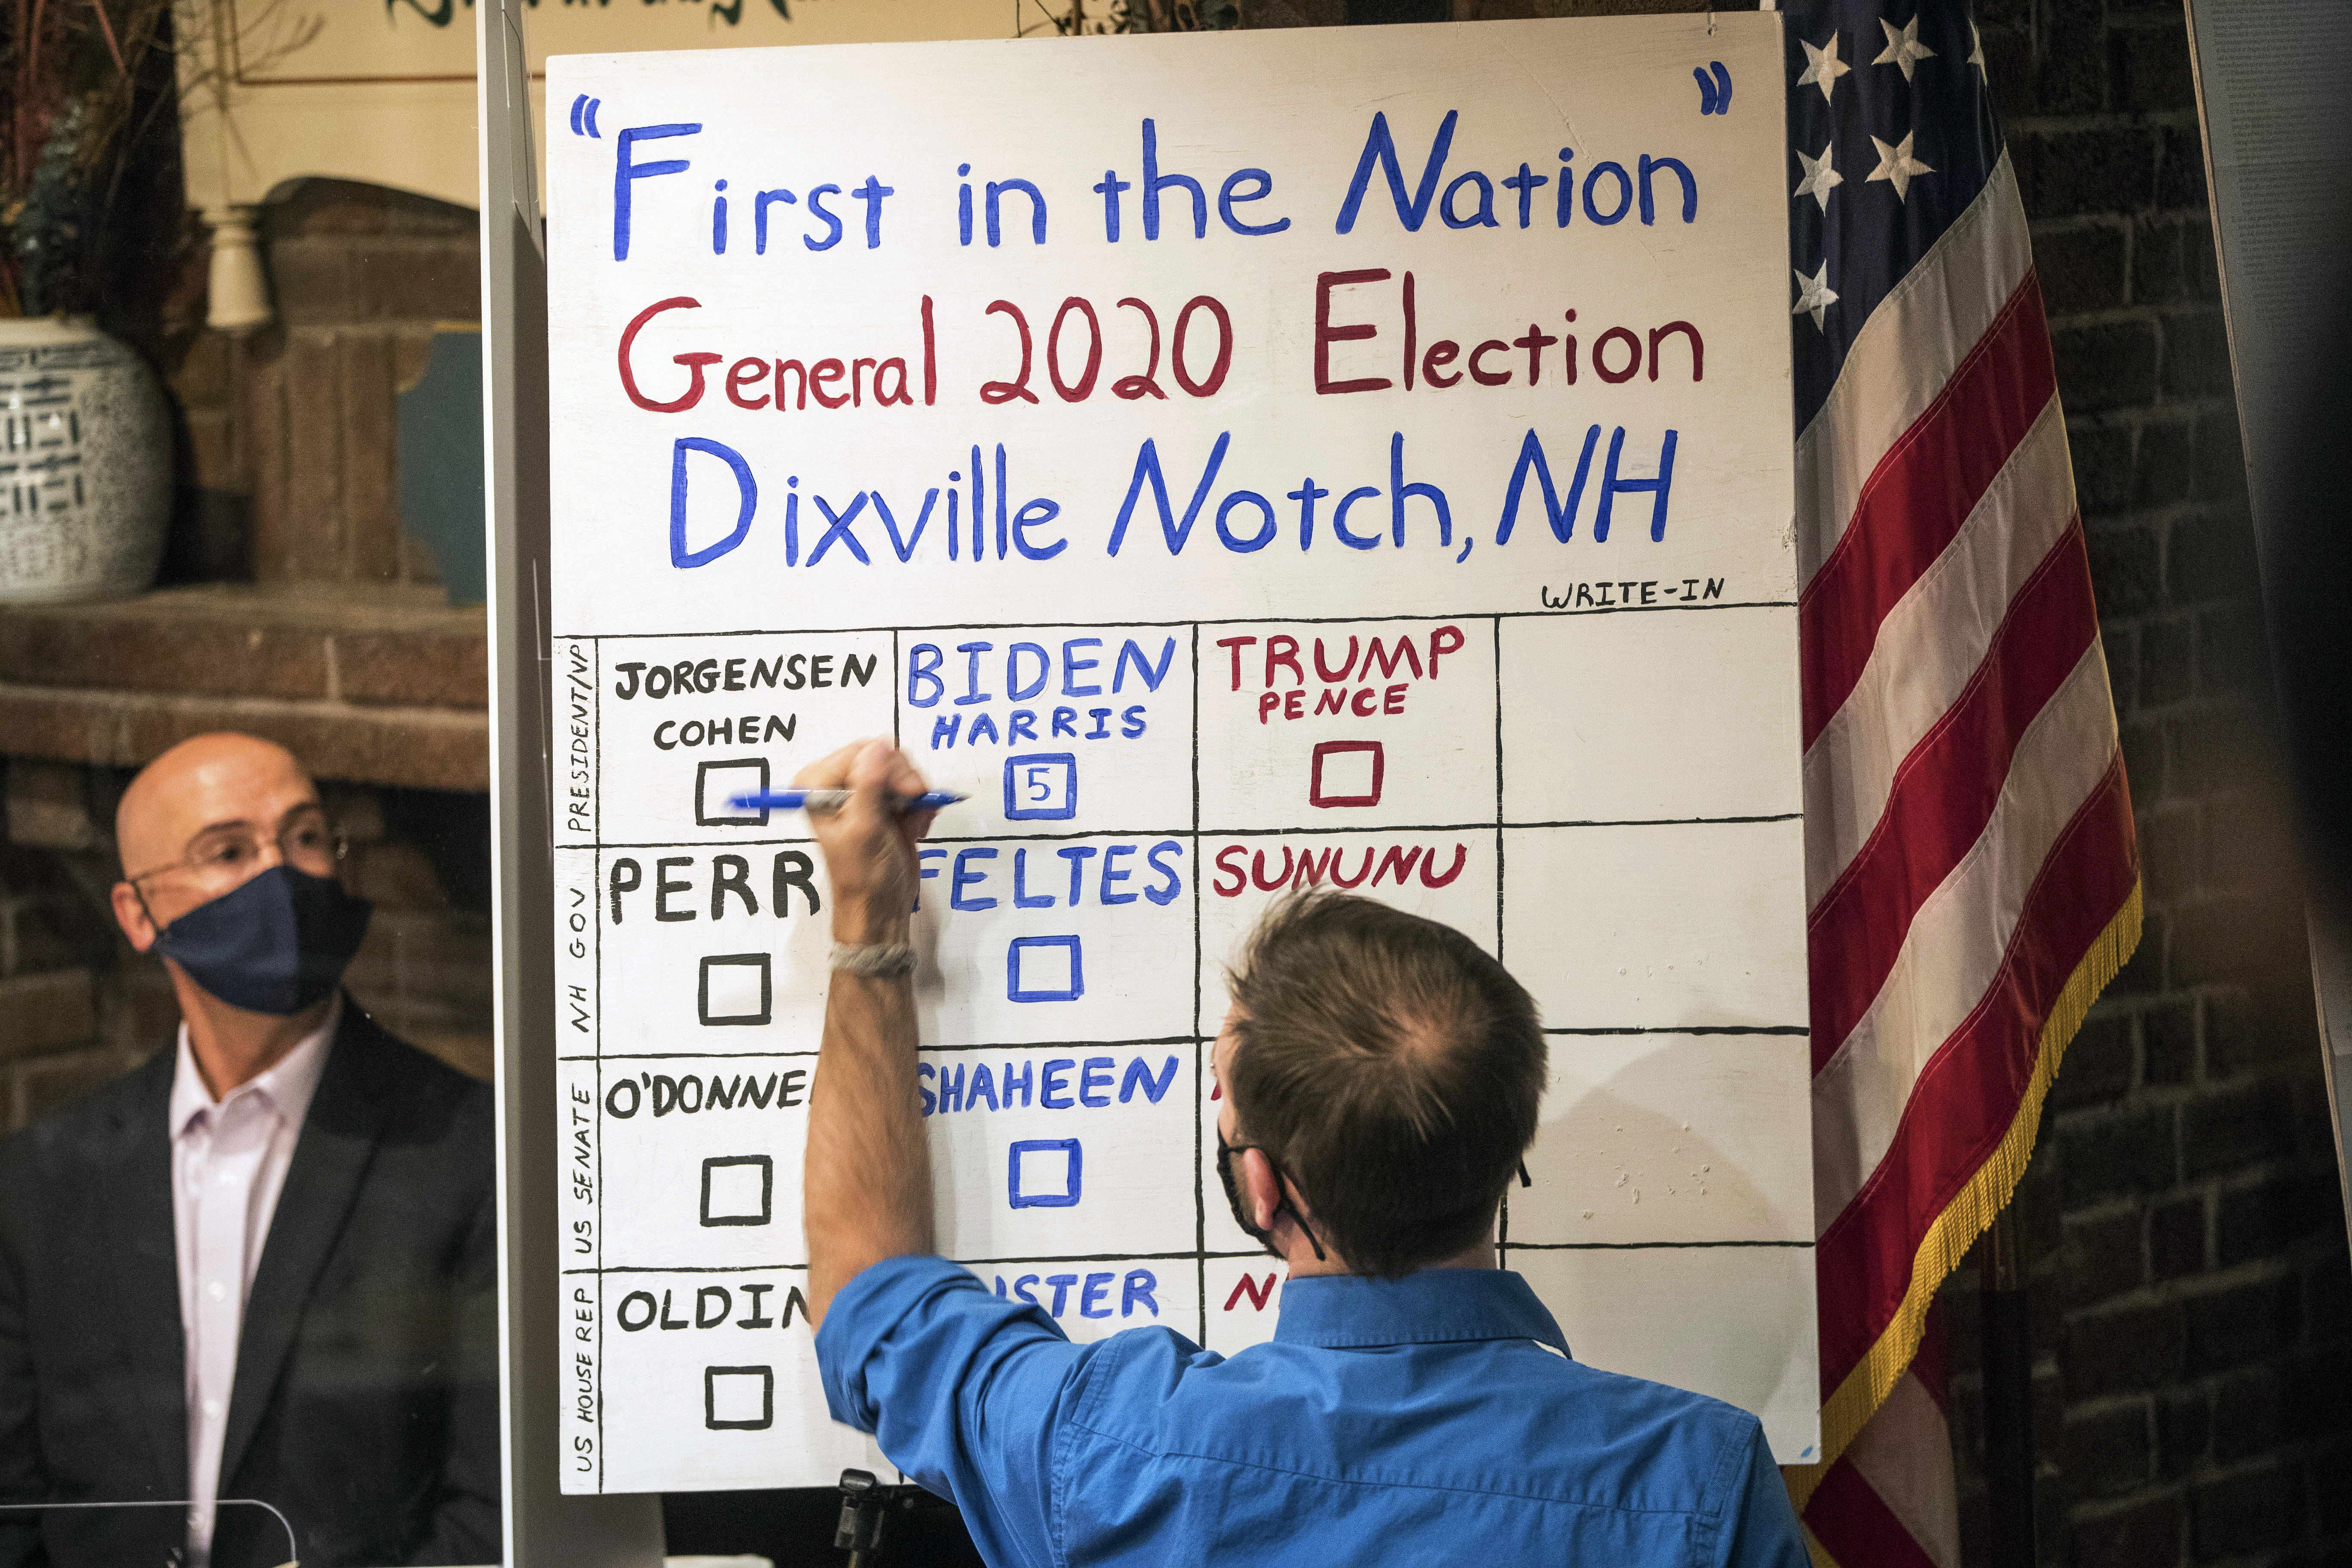 Biden takes all 5 votes in Dixville Notch NH to notch first victory on Election Day – FOX 35 Orlando